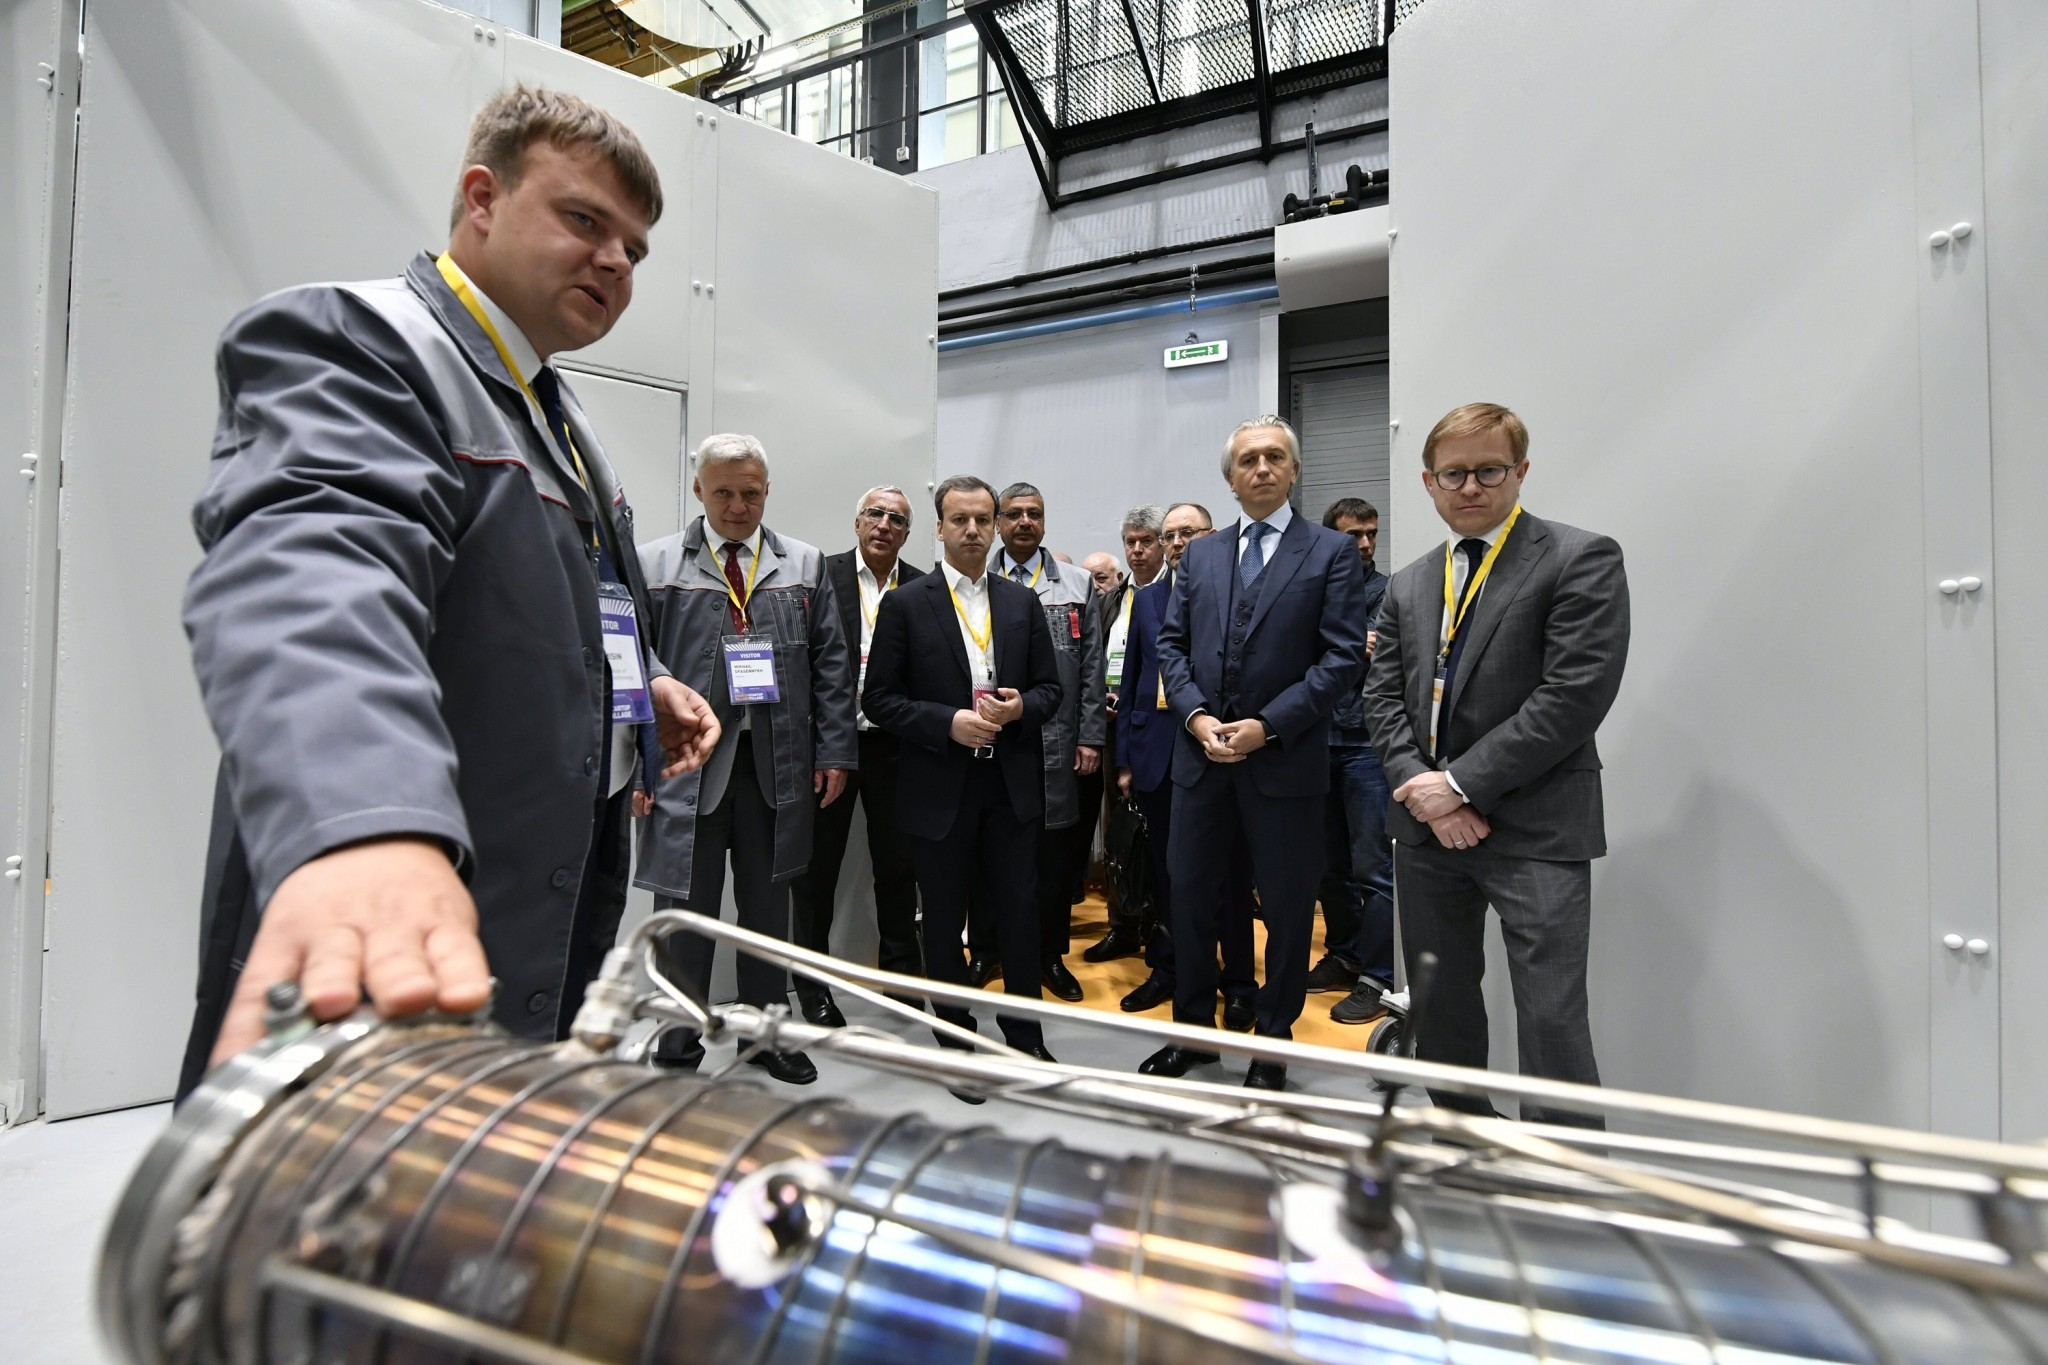 The leaders of Skolkovo, Skoltech and Gazprom Neft join Deputy Prime Minister Dvorkovich for a tour of the new hydrocarbon recovery lab.